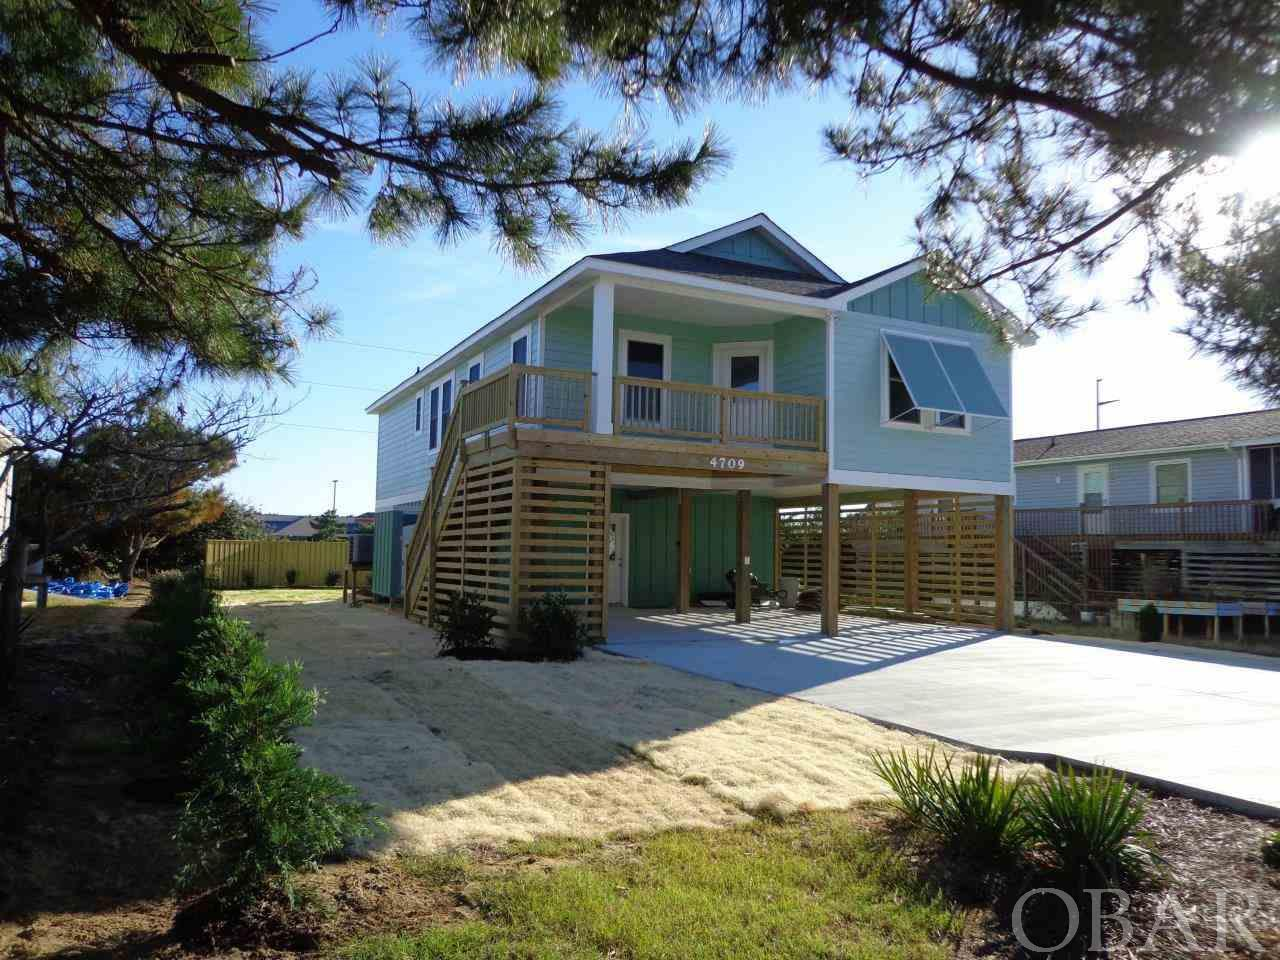 4709 Pompano Court,Nags Head,NC 27959,4 Bedrooms Bedrooms,3 BathroomsBathrooms,Residential,Pompano Court,101601